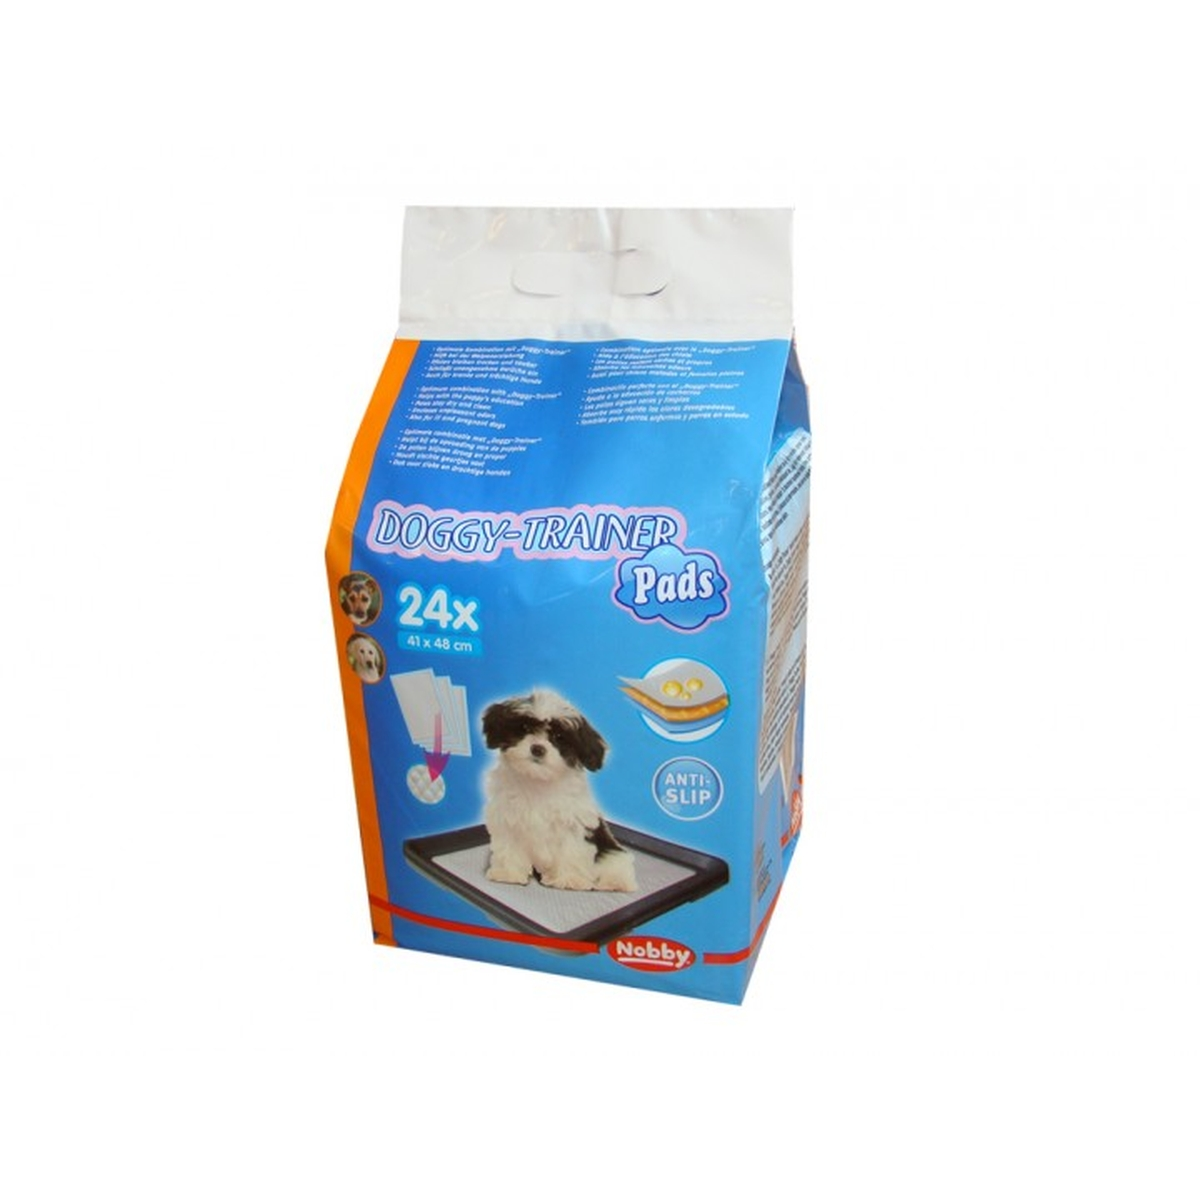 NB DOG.TRAINER PADS 24ST 41X48 00002